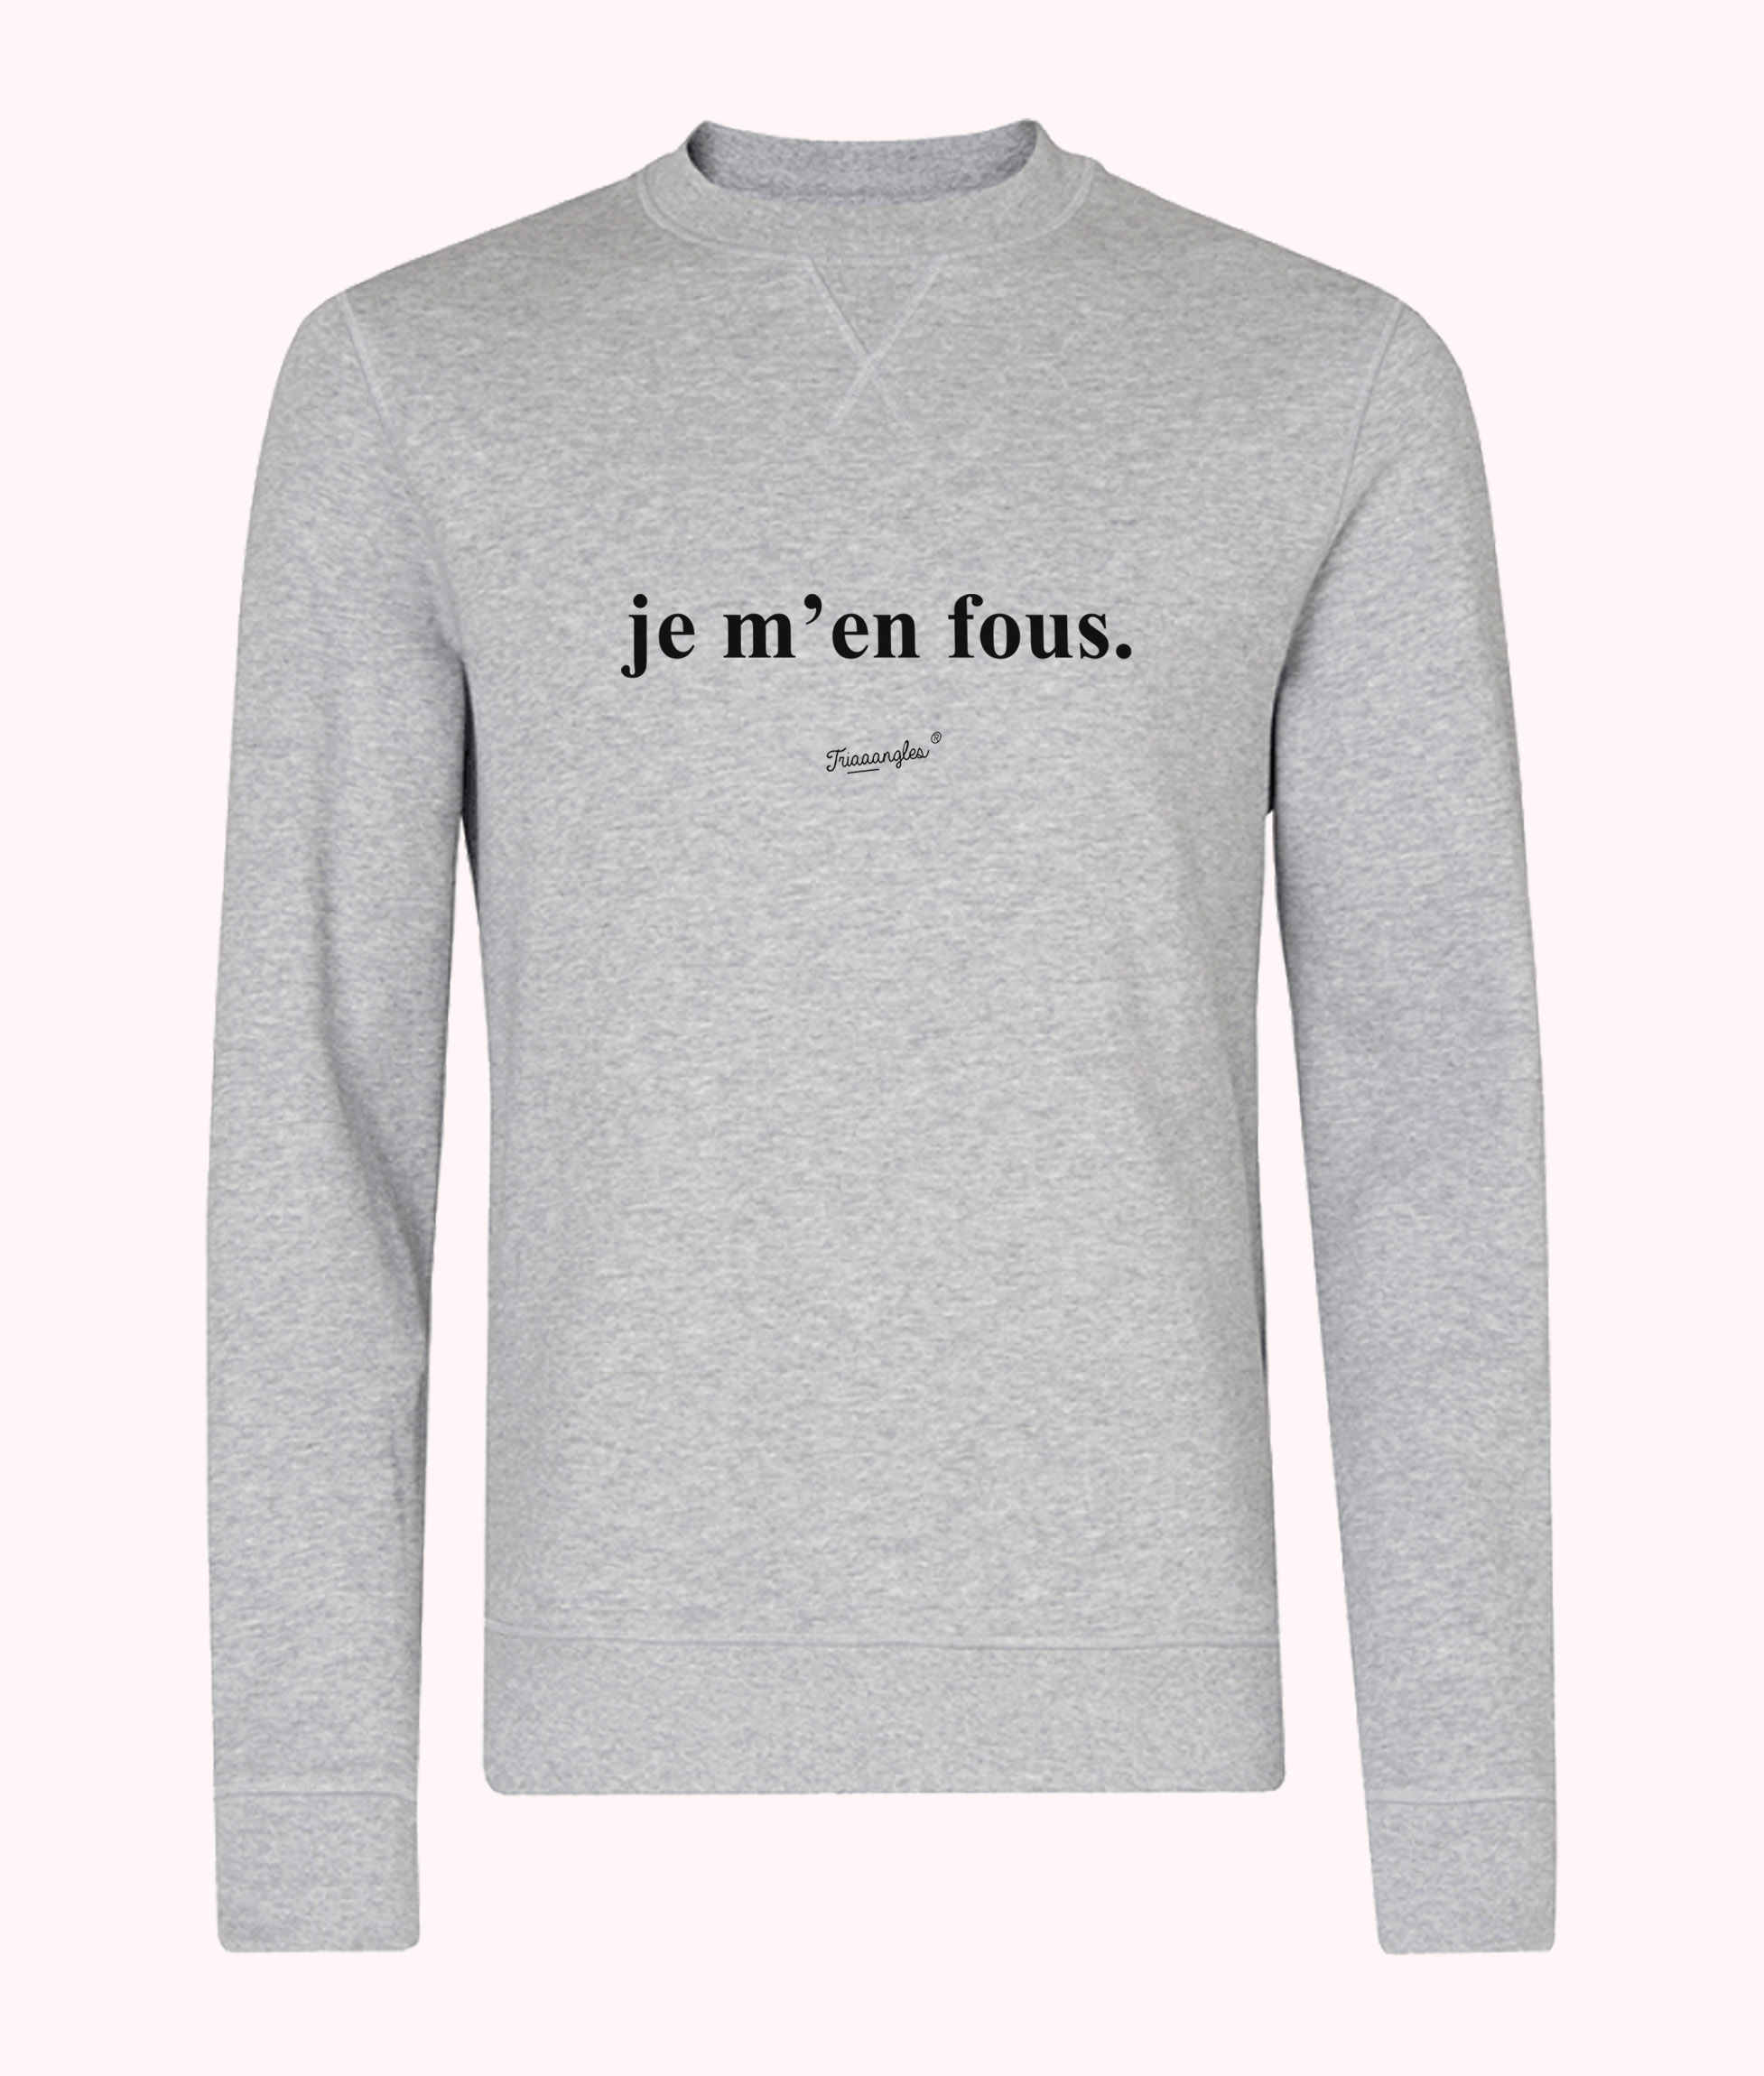 Sweat Triaaangles ® gris chiné - Je m'en fous - 49€90